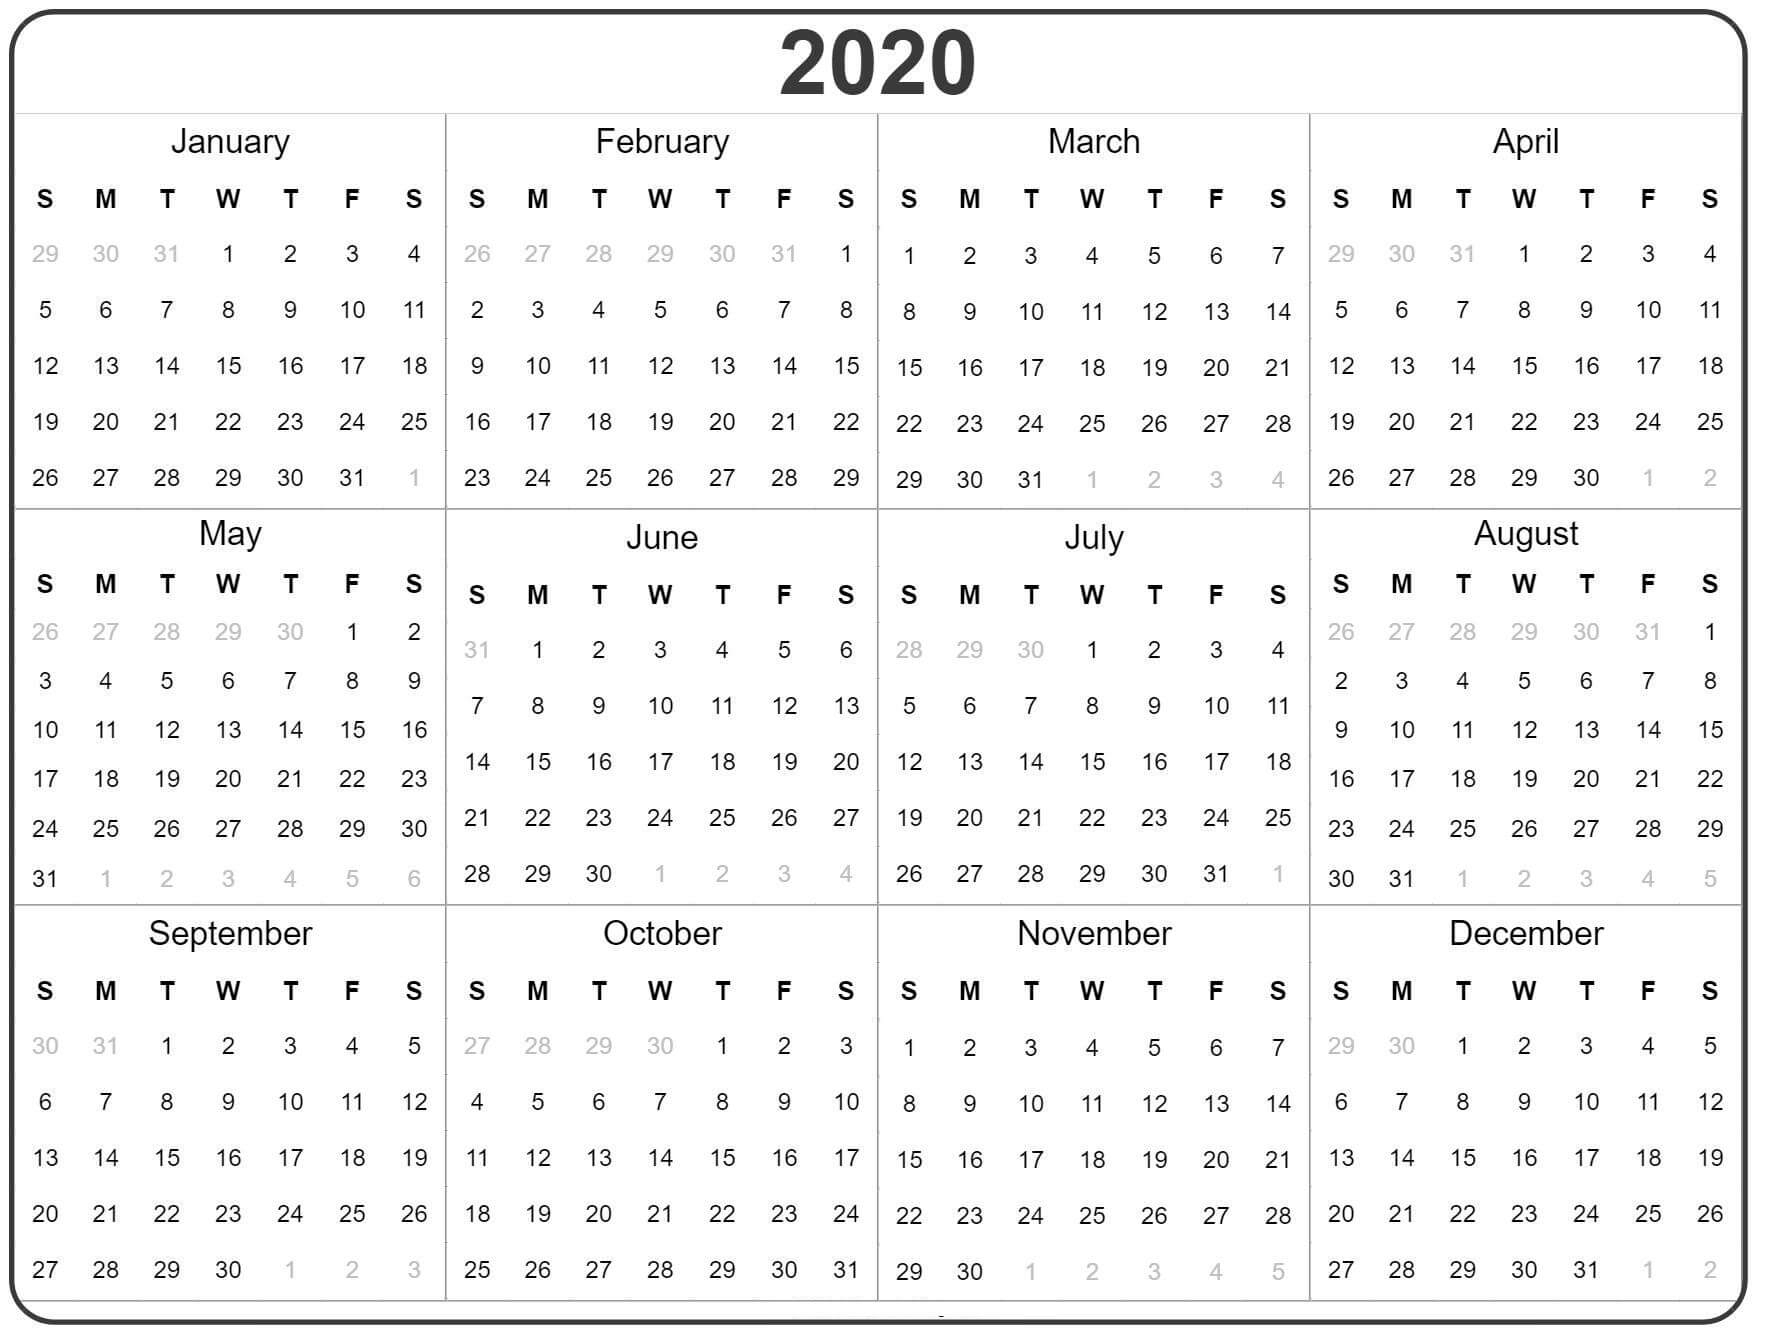 Free Yearly Calendar 2020 With Notes - 2019 Calendars For in 2020 All Year Calendar